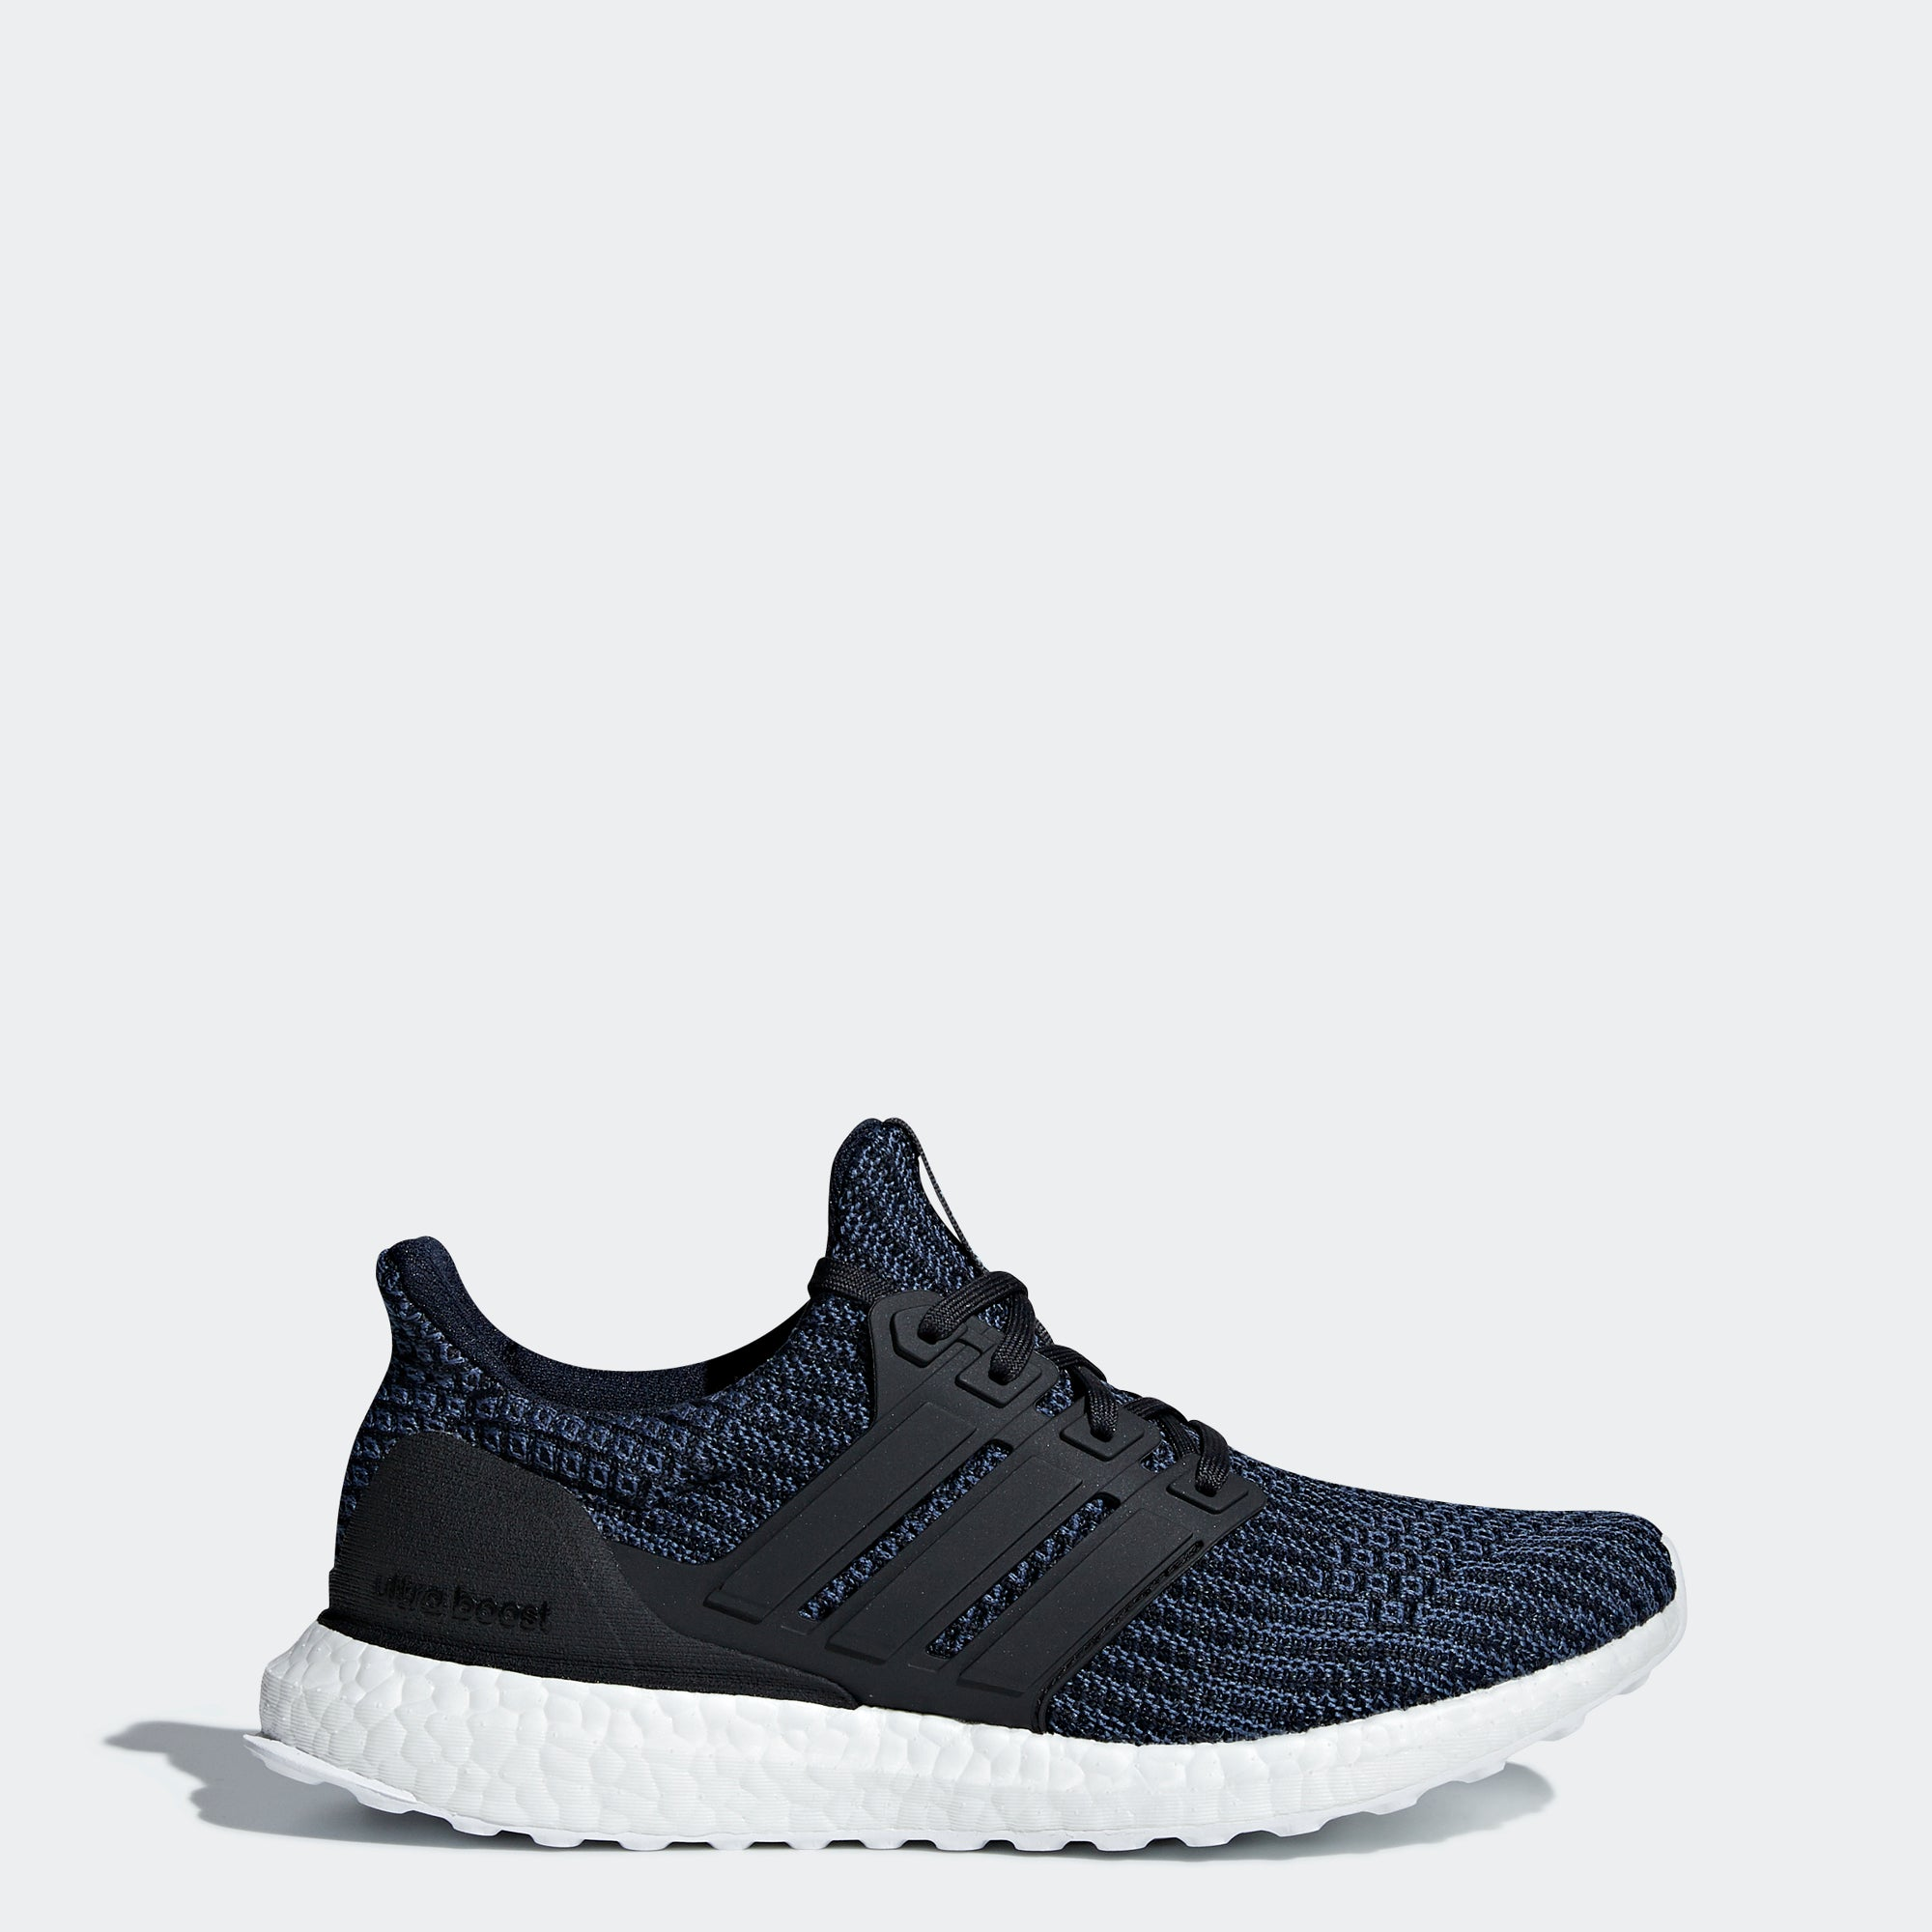 super popular 772dd 902a5 Women s adidas Running UltraBOOST Parley Shoes Legend Ink